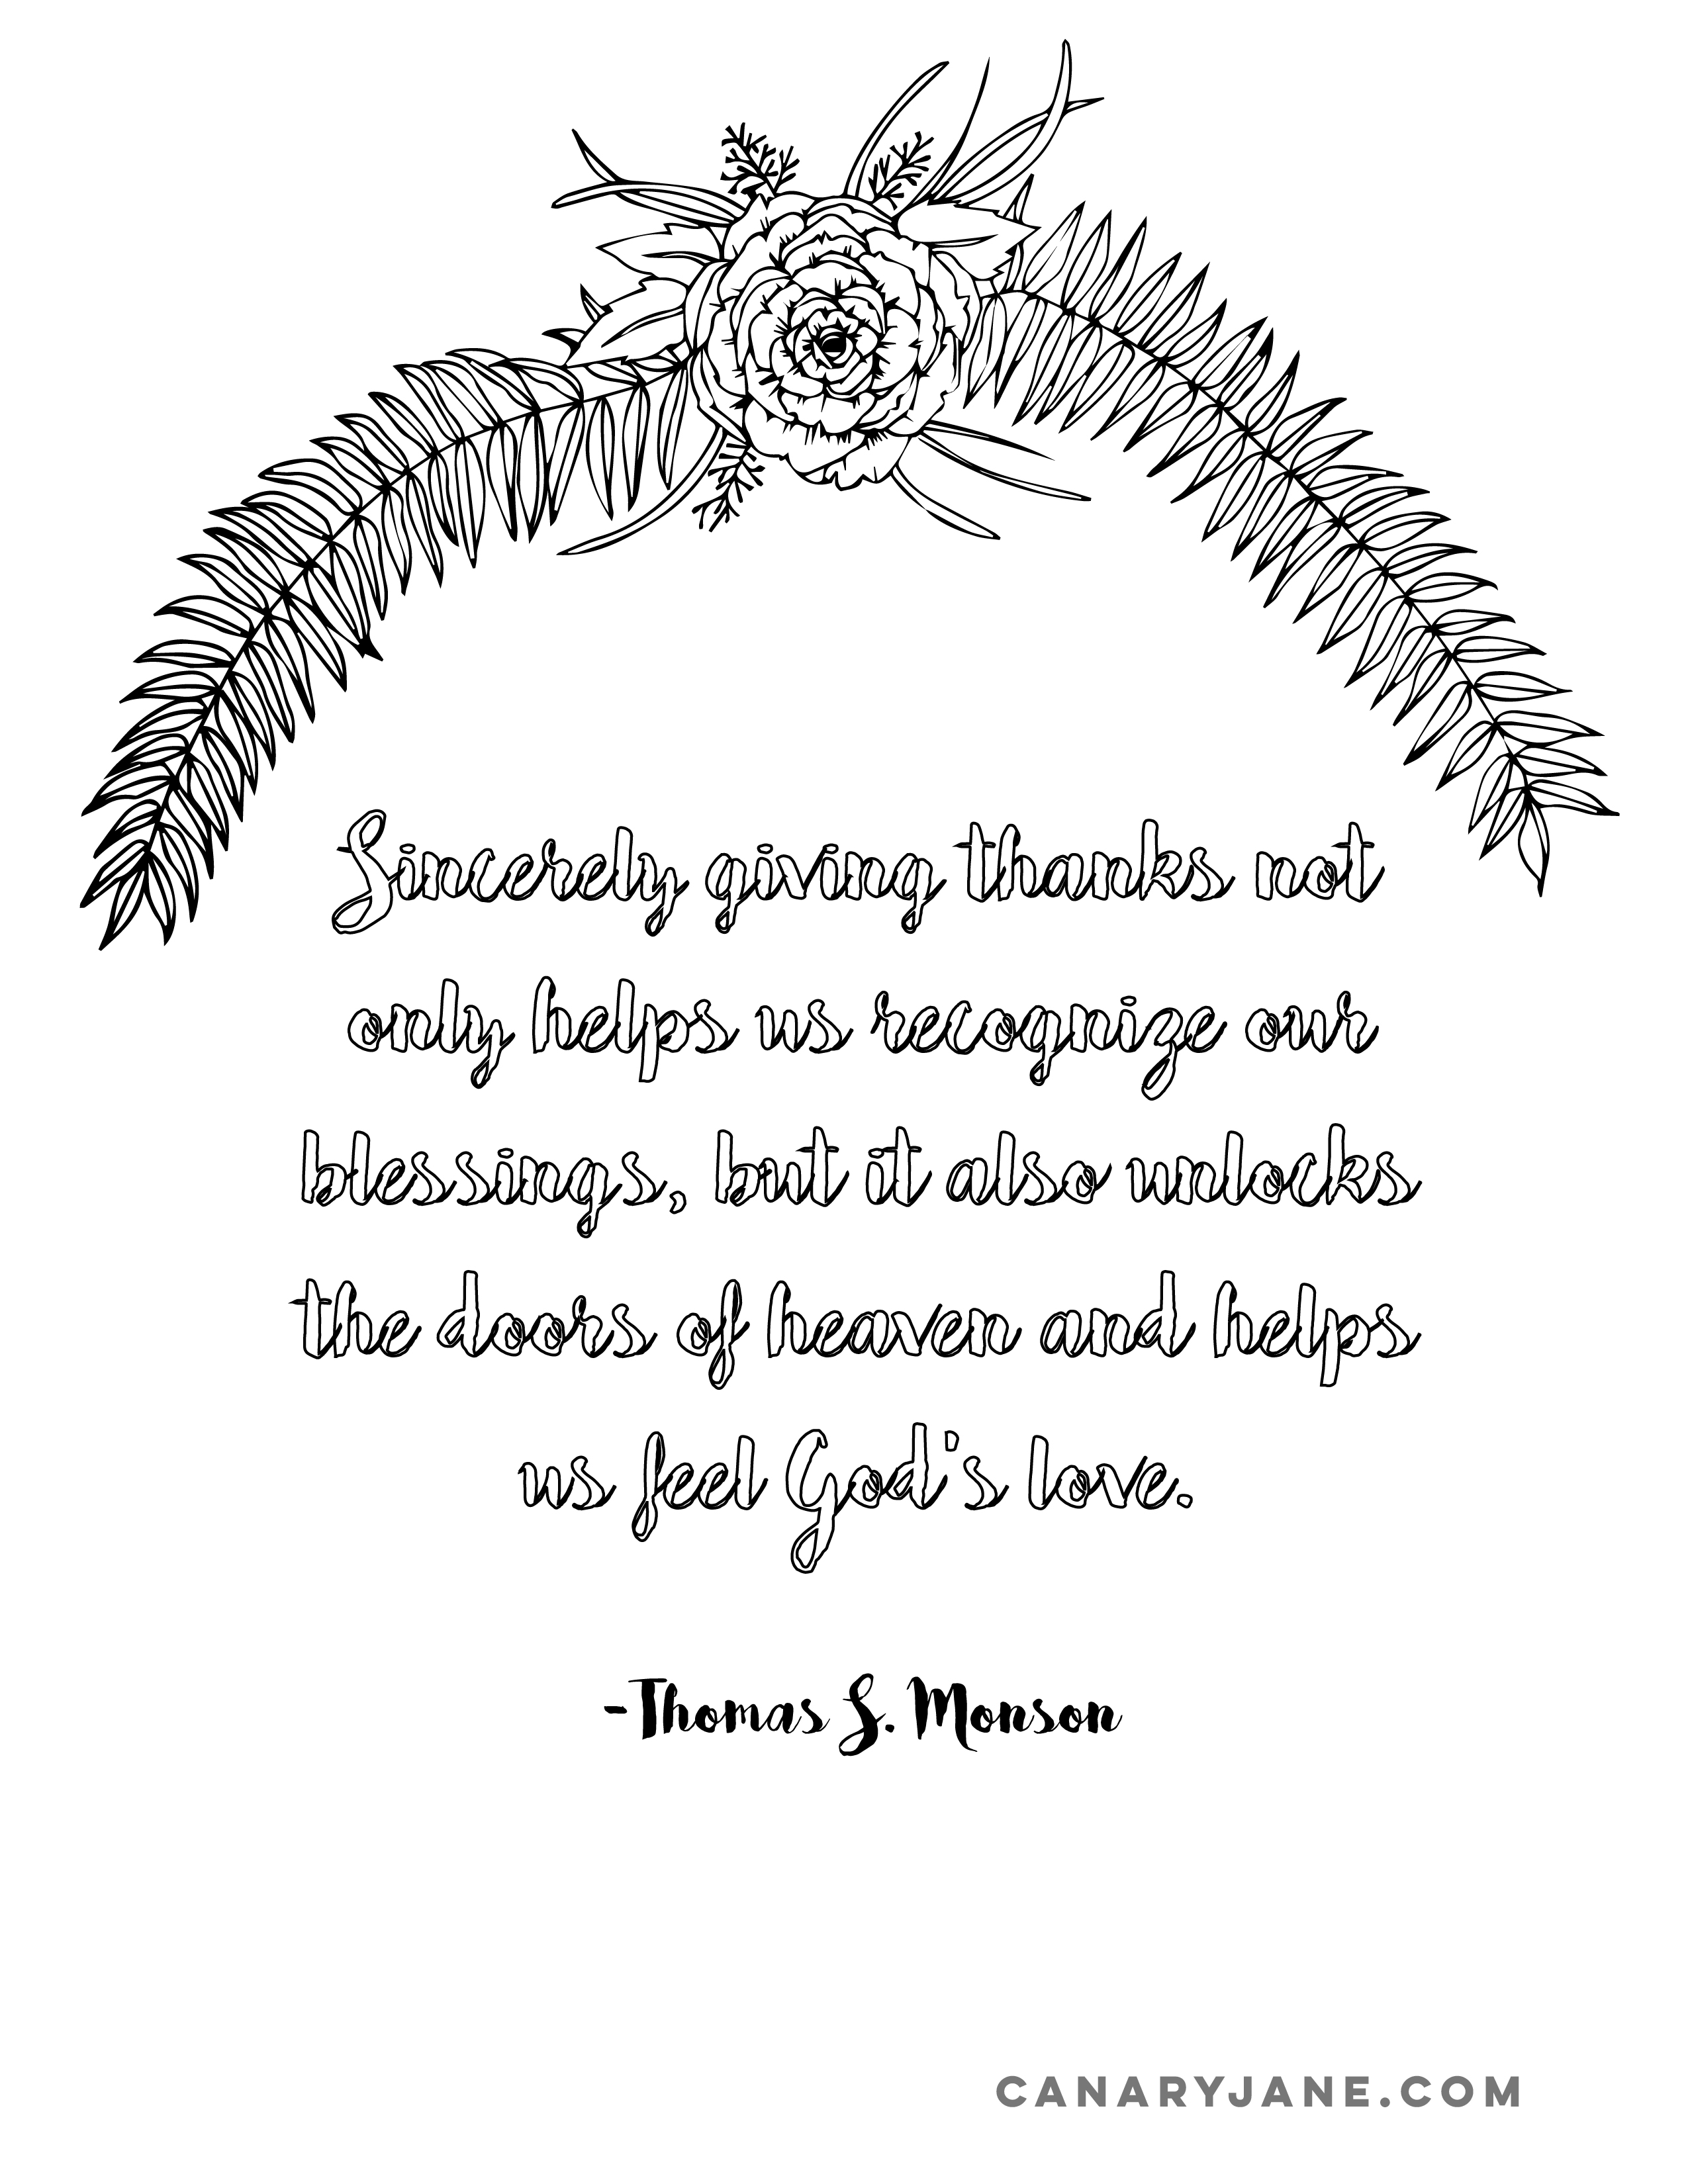 Thomas s monson quote canary jane for Thomas s monson coloring page